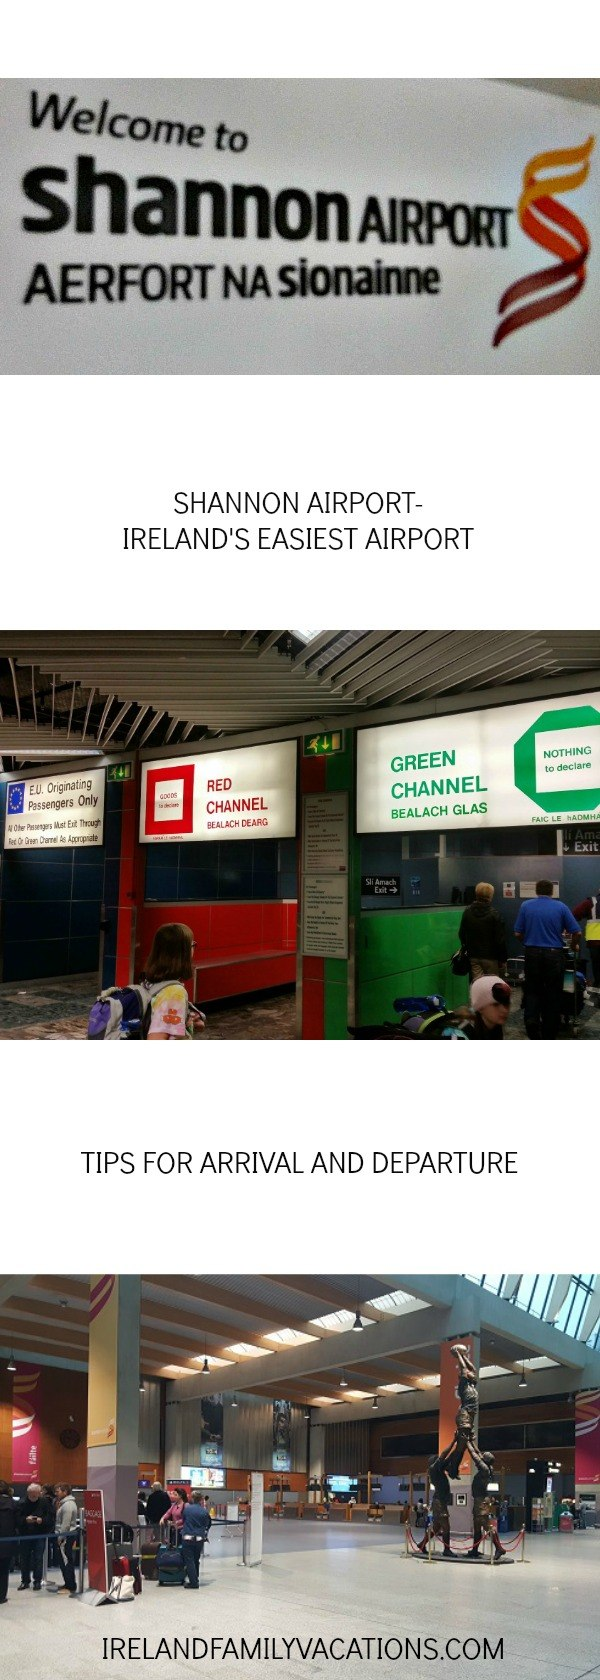 handy tips for Shannon Airport Arrivals and Departures. Ireland travel tips   Ireland vacation   IrelandFamilyVacations.com